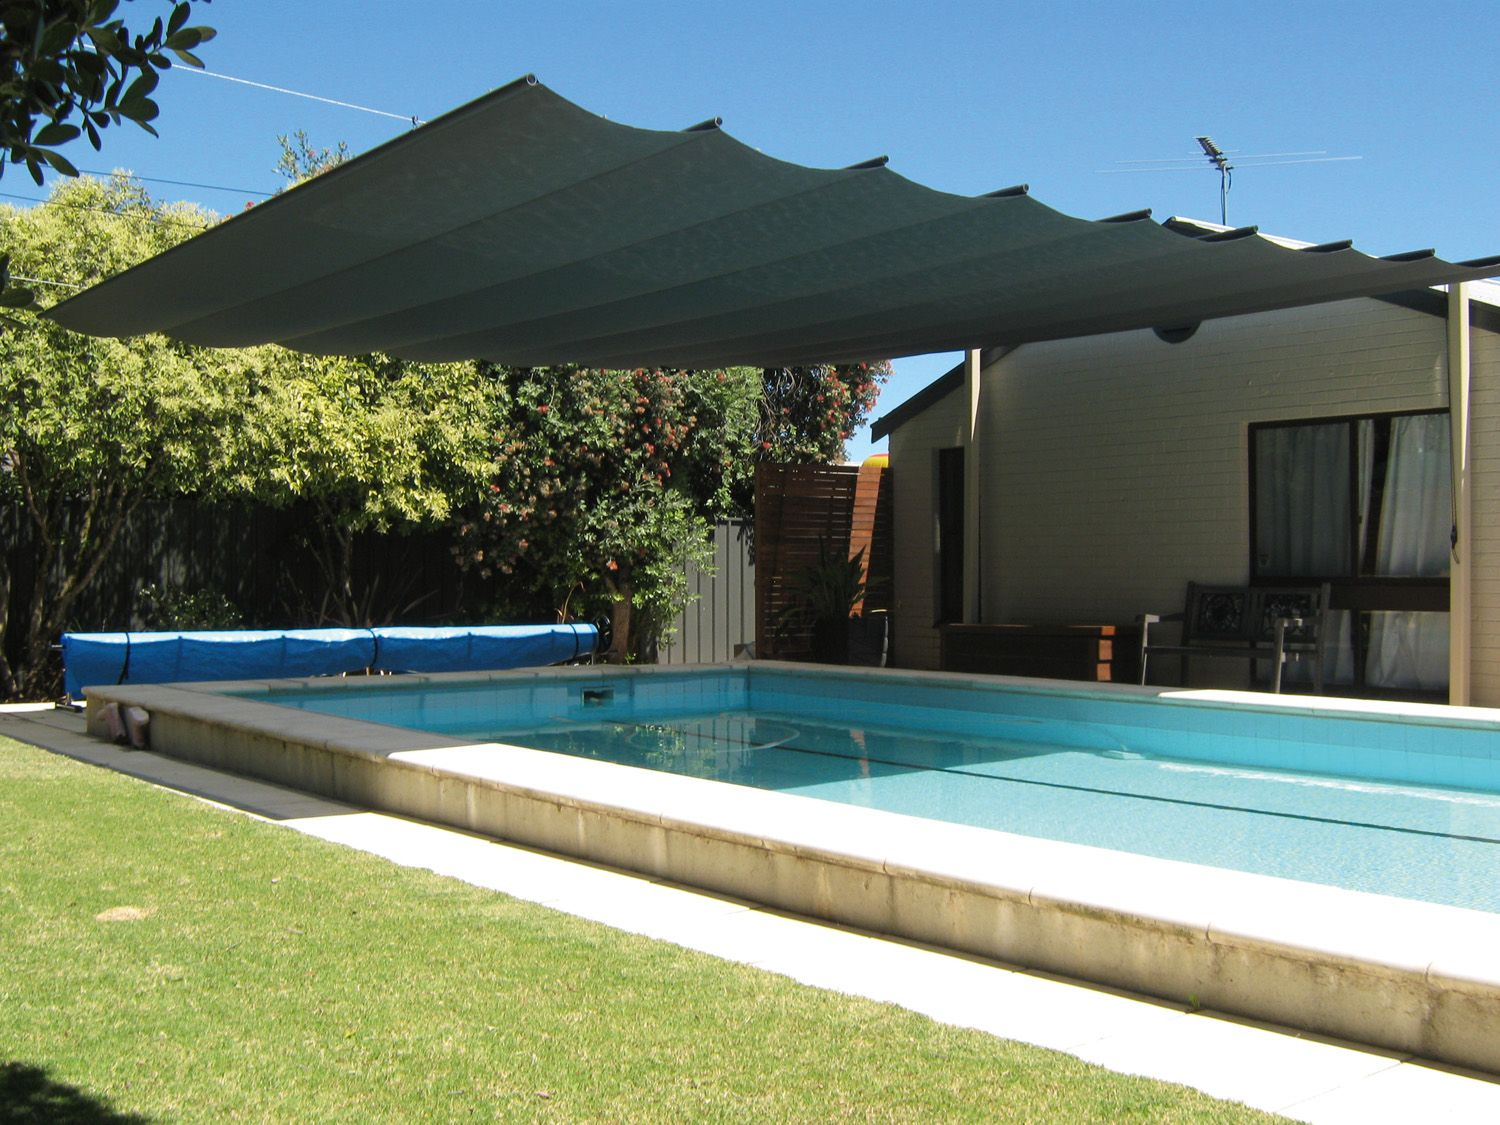 Cool Your Outdoor Entertaining Area With A Retractable Shade System Pool Shade Backyard Shade Outdoor Shade